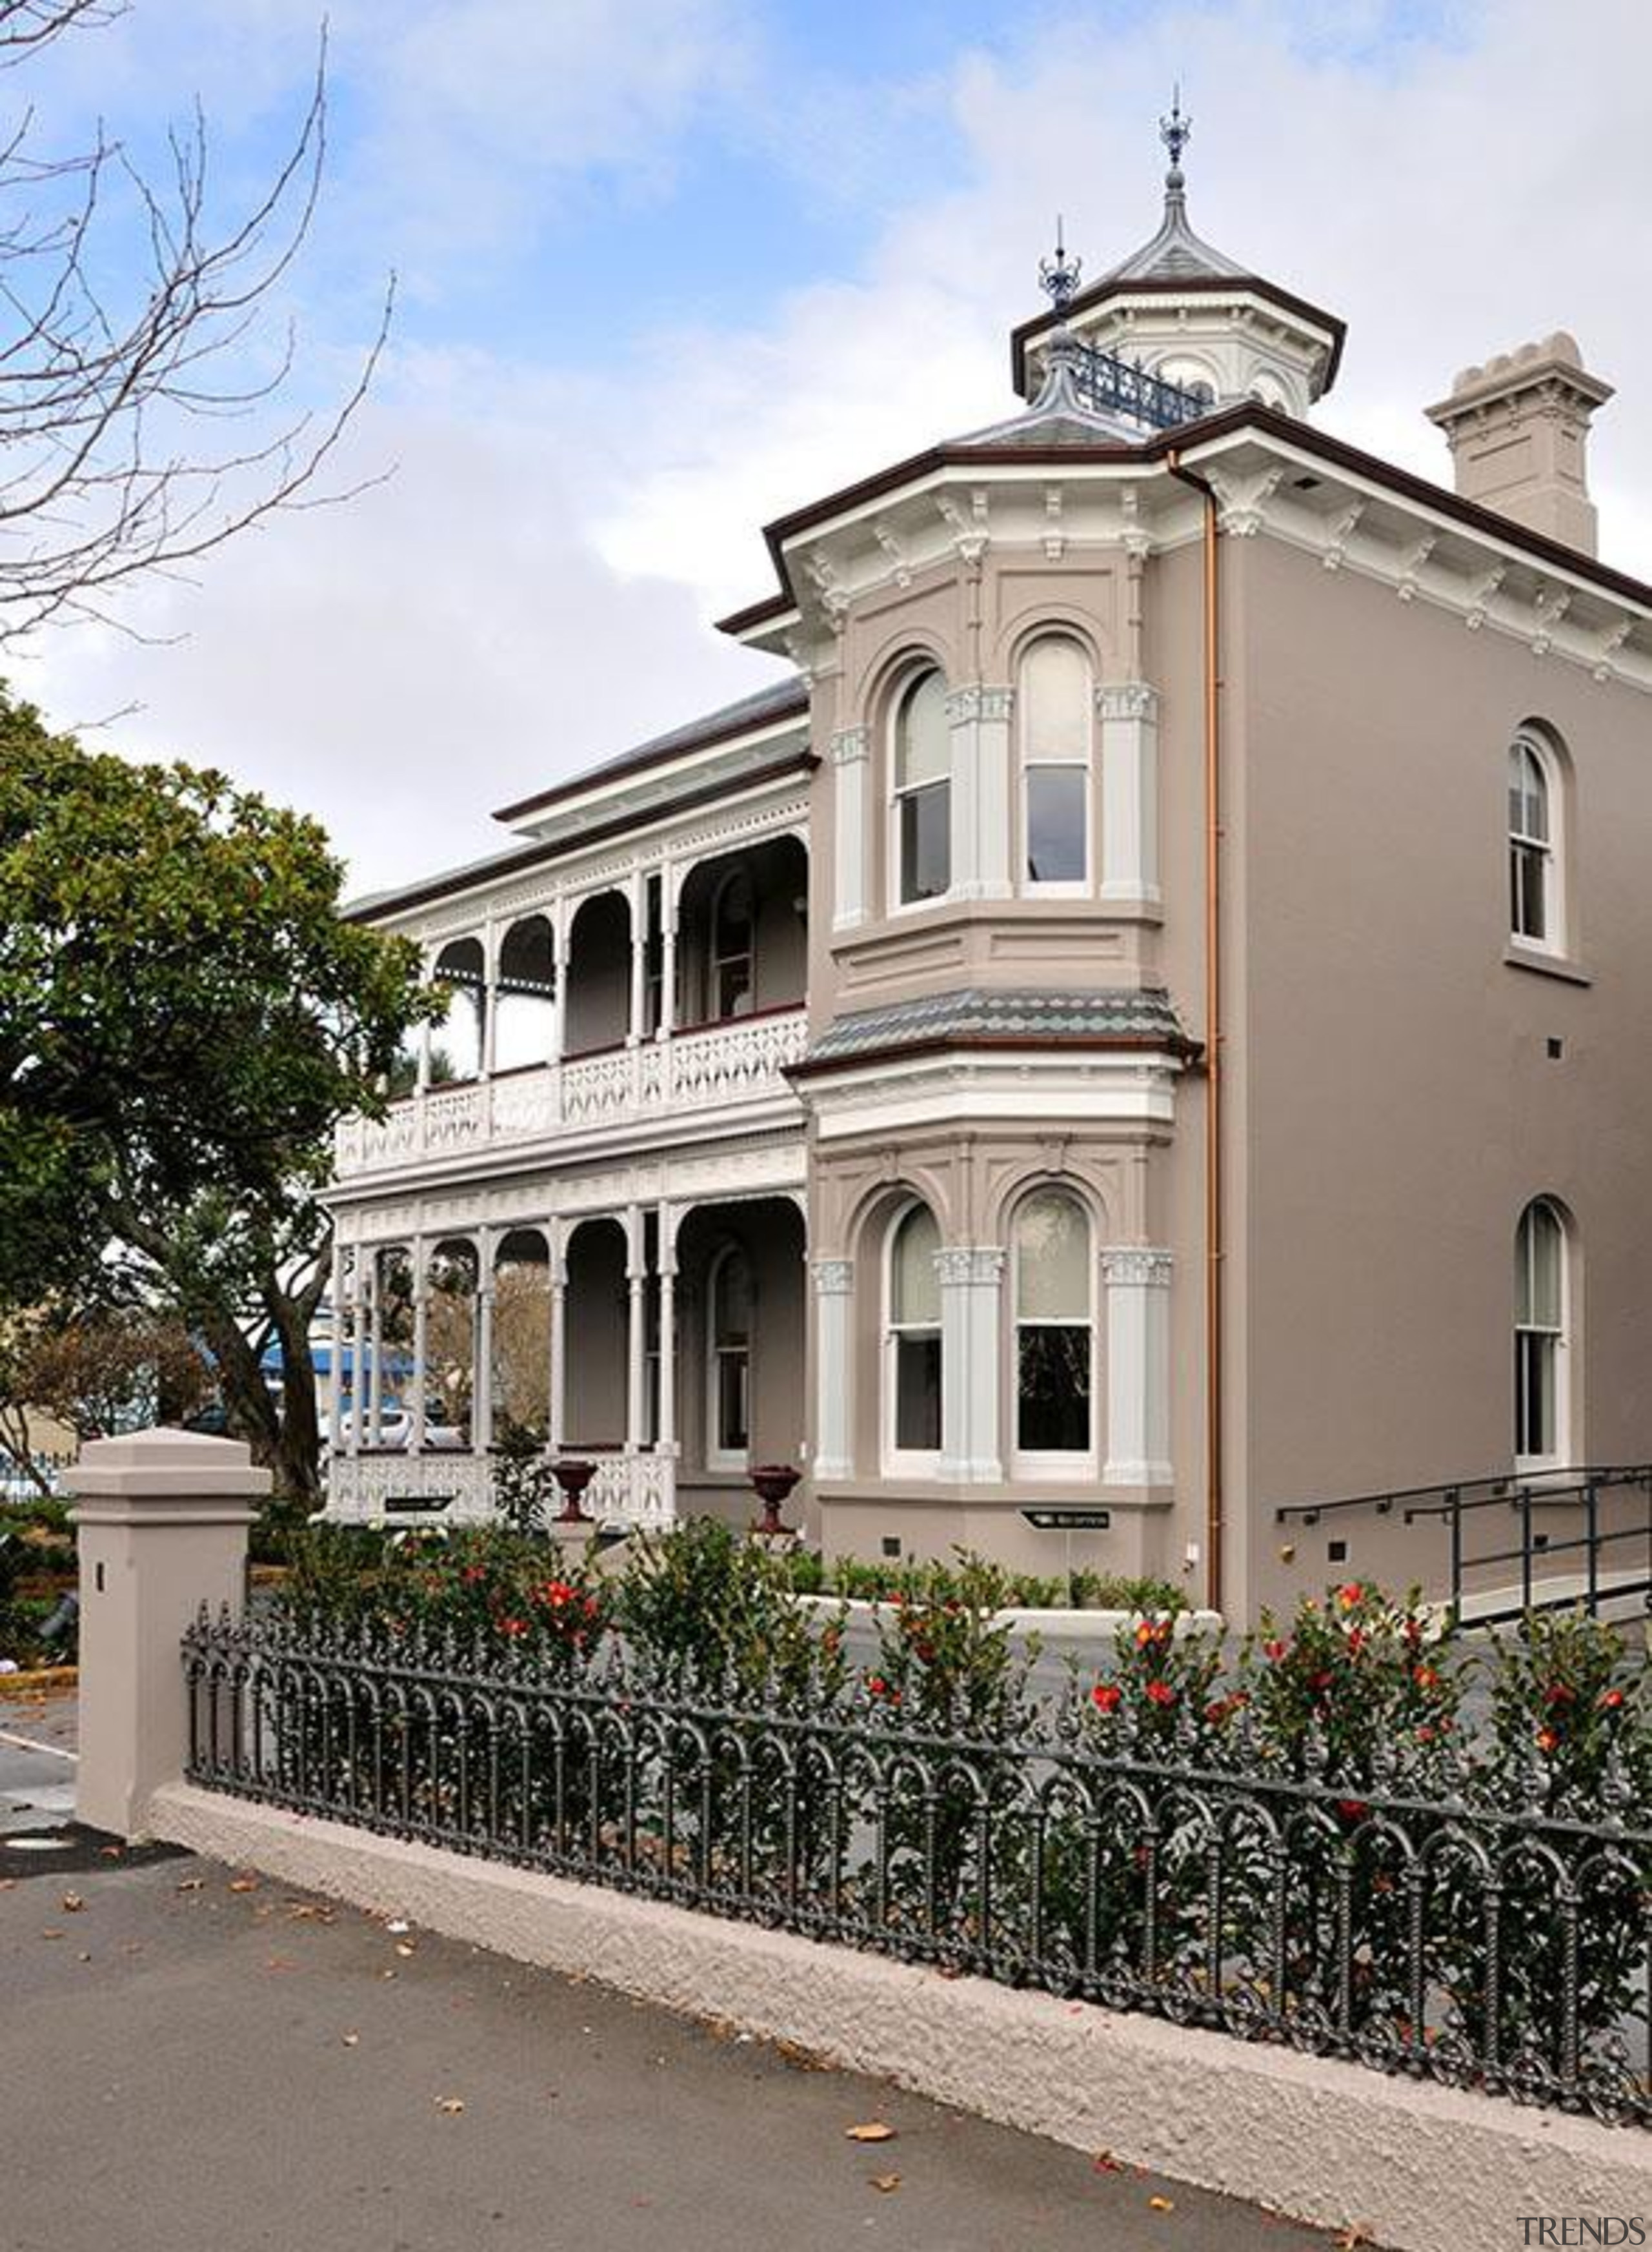 NOMINEEAllendale House and Annexe (3 of 4) - architecture, building, classical architecture, estate, facade, historic house, home, house, mansion, neighbourhood, property, real estate, residential area, villa, window, gray